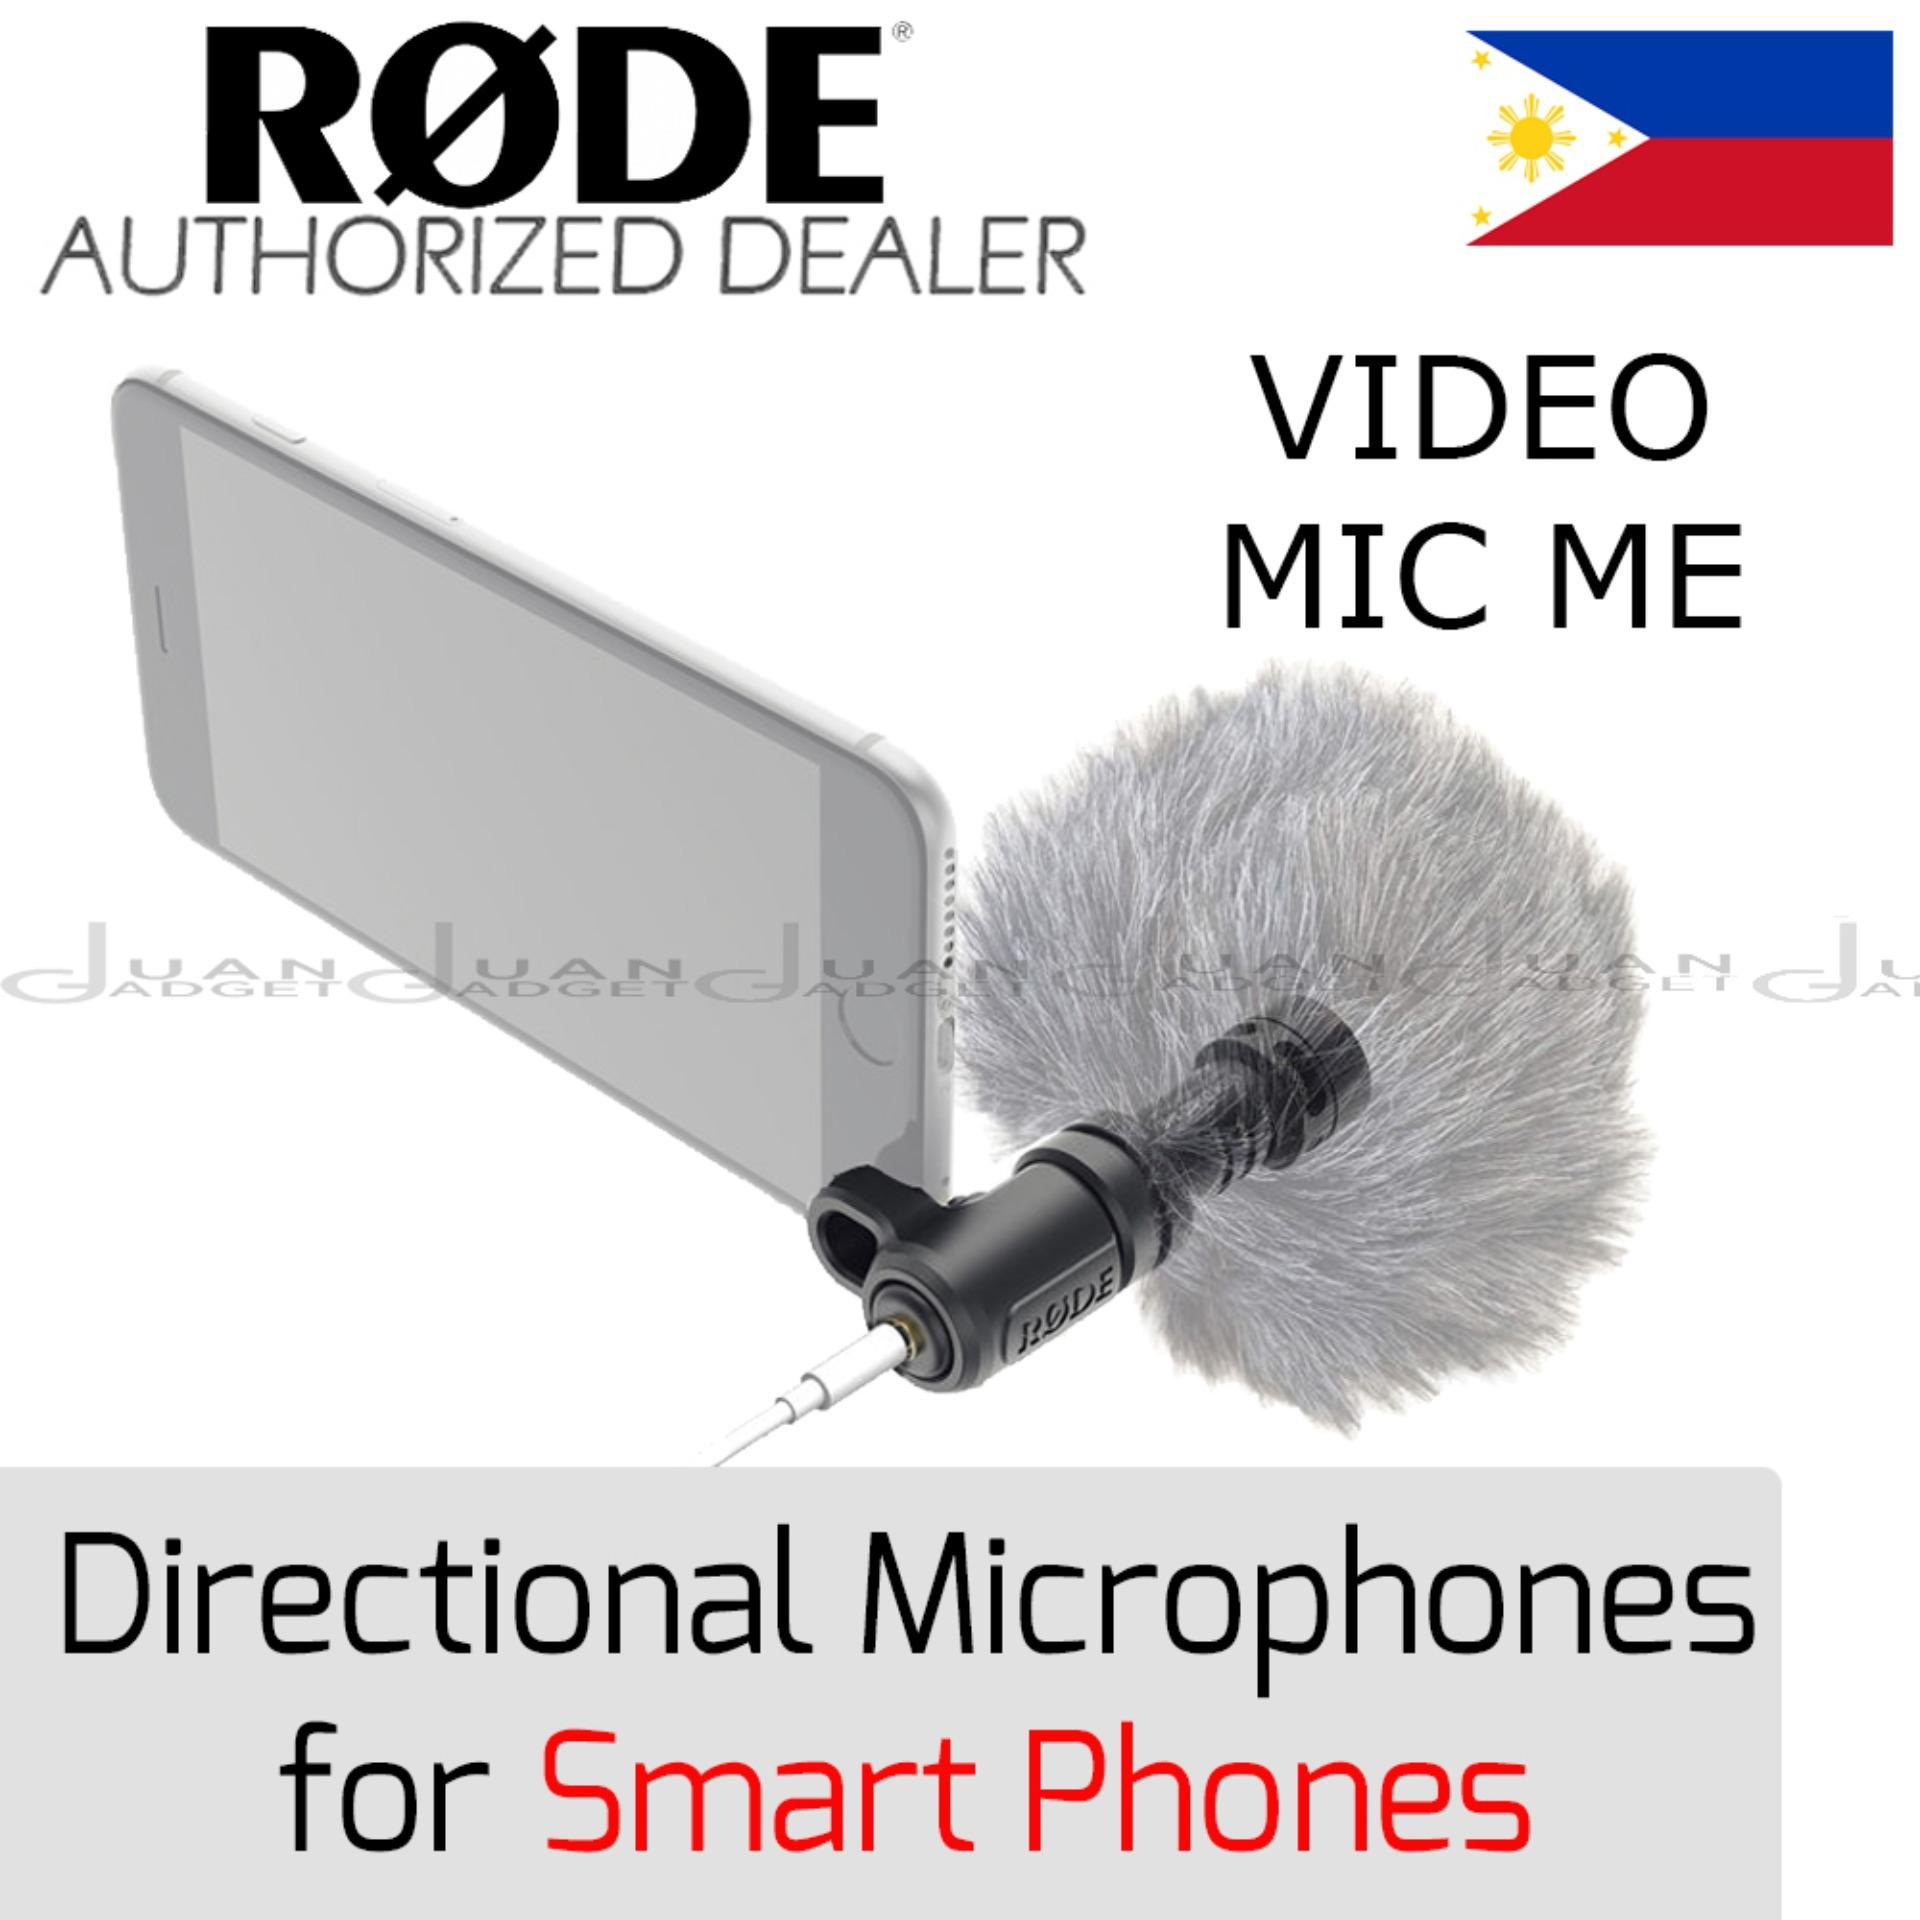 Rode Philippines Price List Microphone For Sale Lazada Mic Videomicro Video Micro Videomic Me Directional Smart Phones